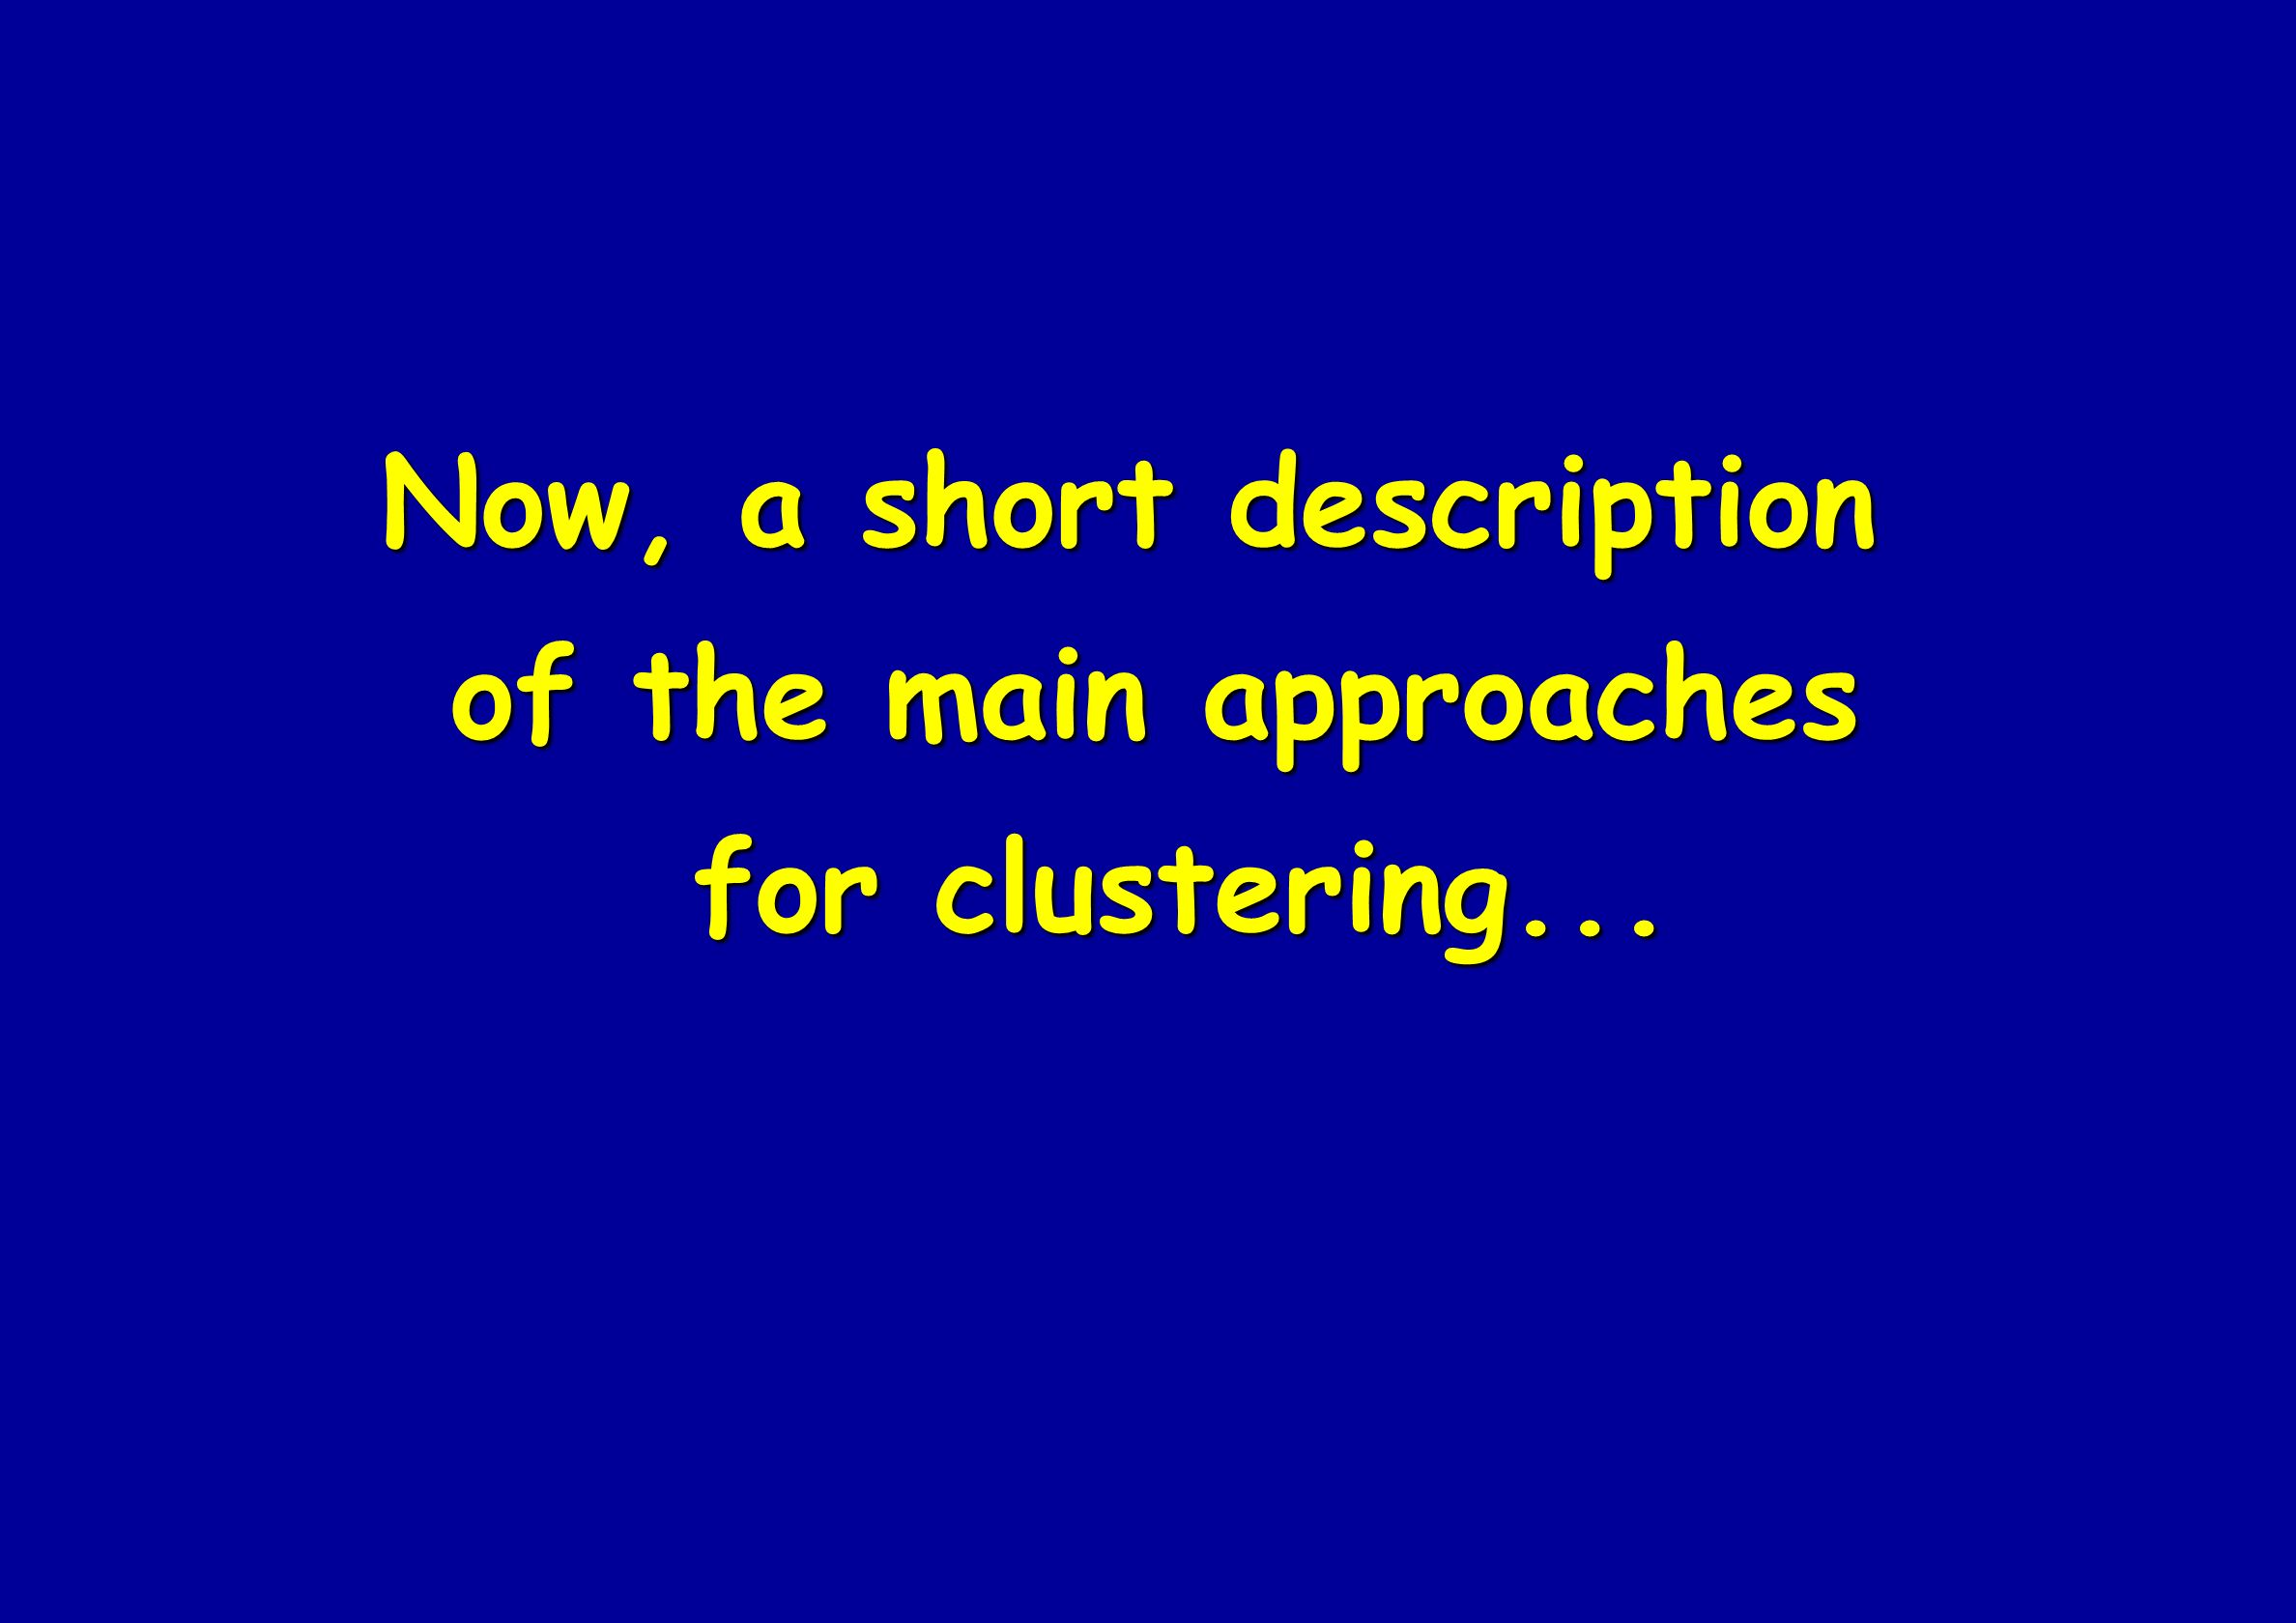 Now, a short description of the main approaches for clustering... for clustering...